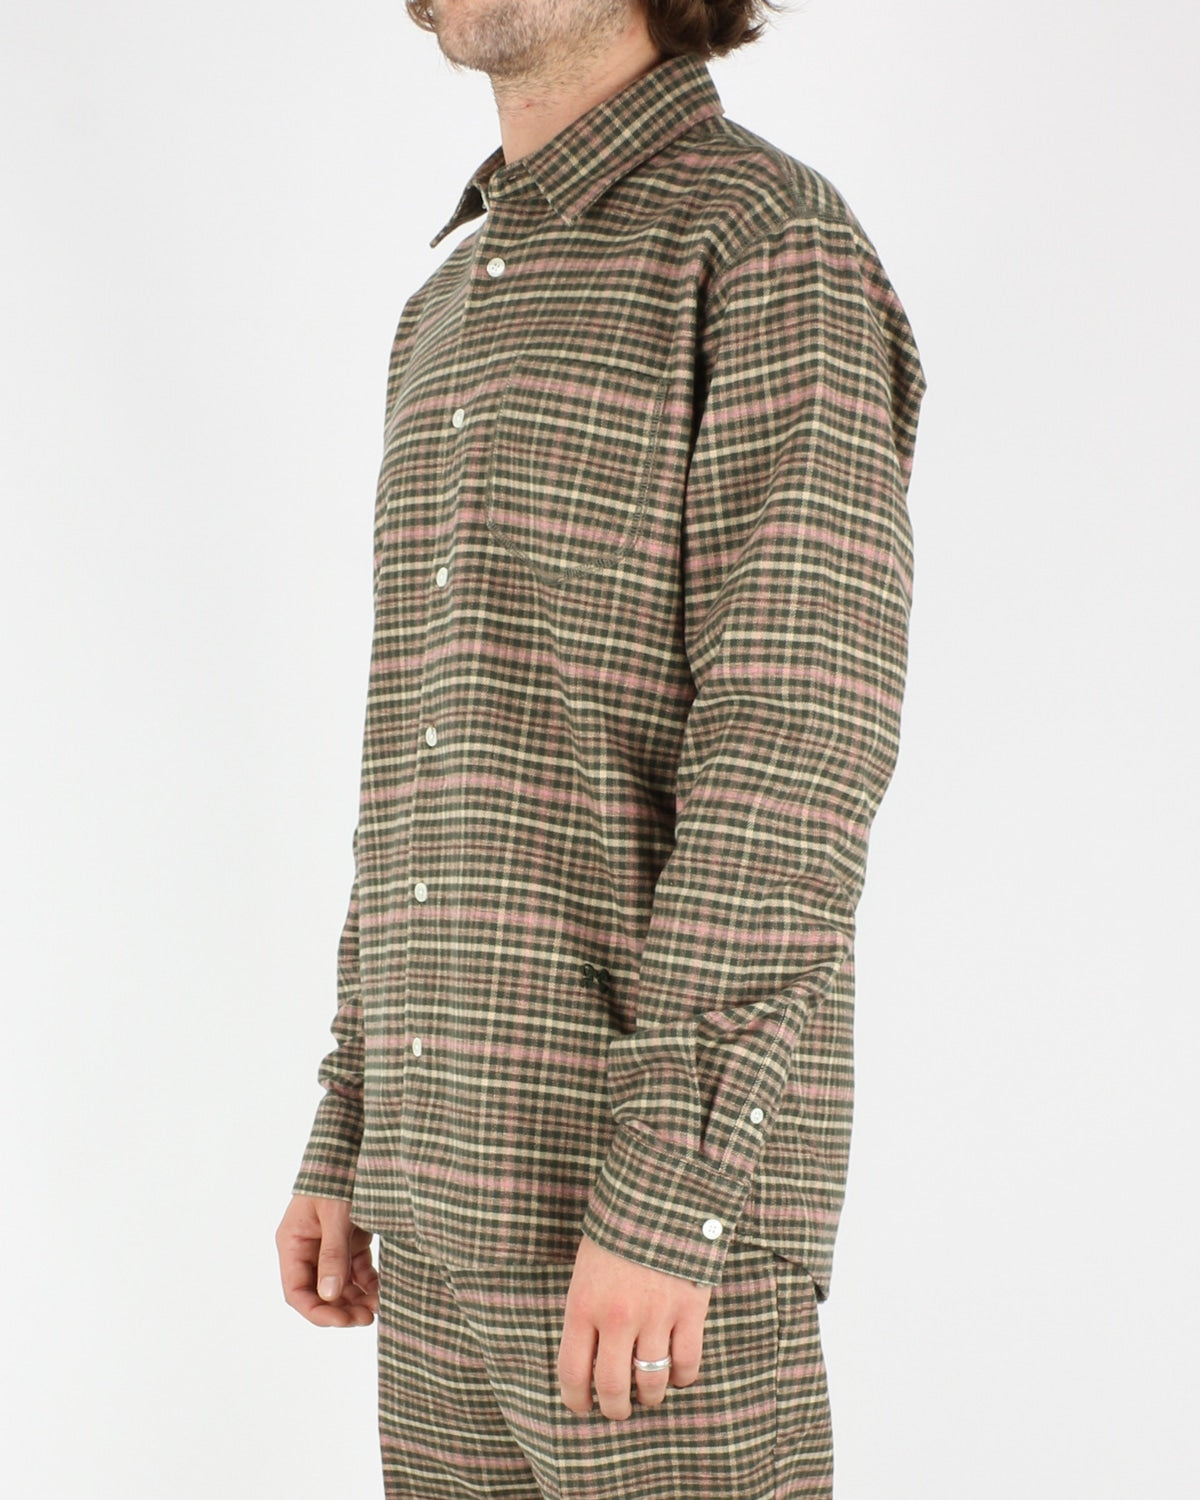 soulland_logan flannell shirt_multi_2_4